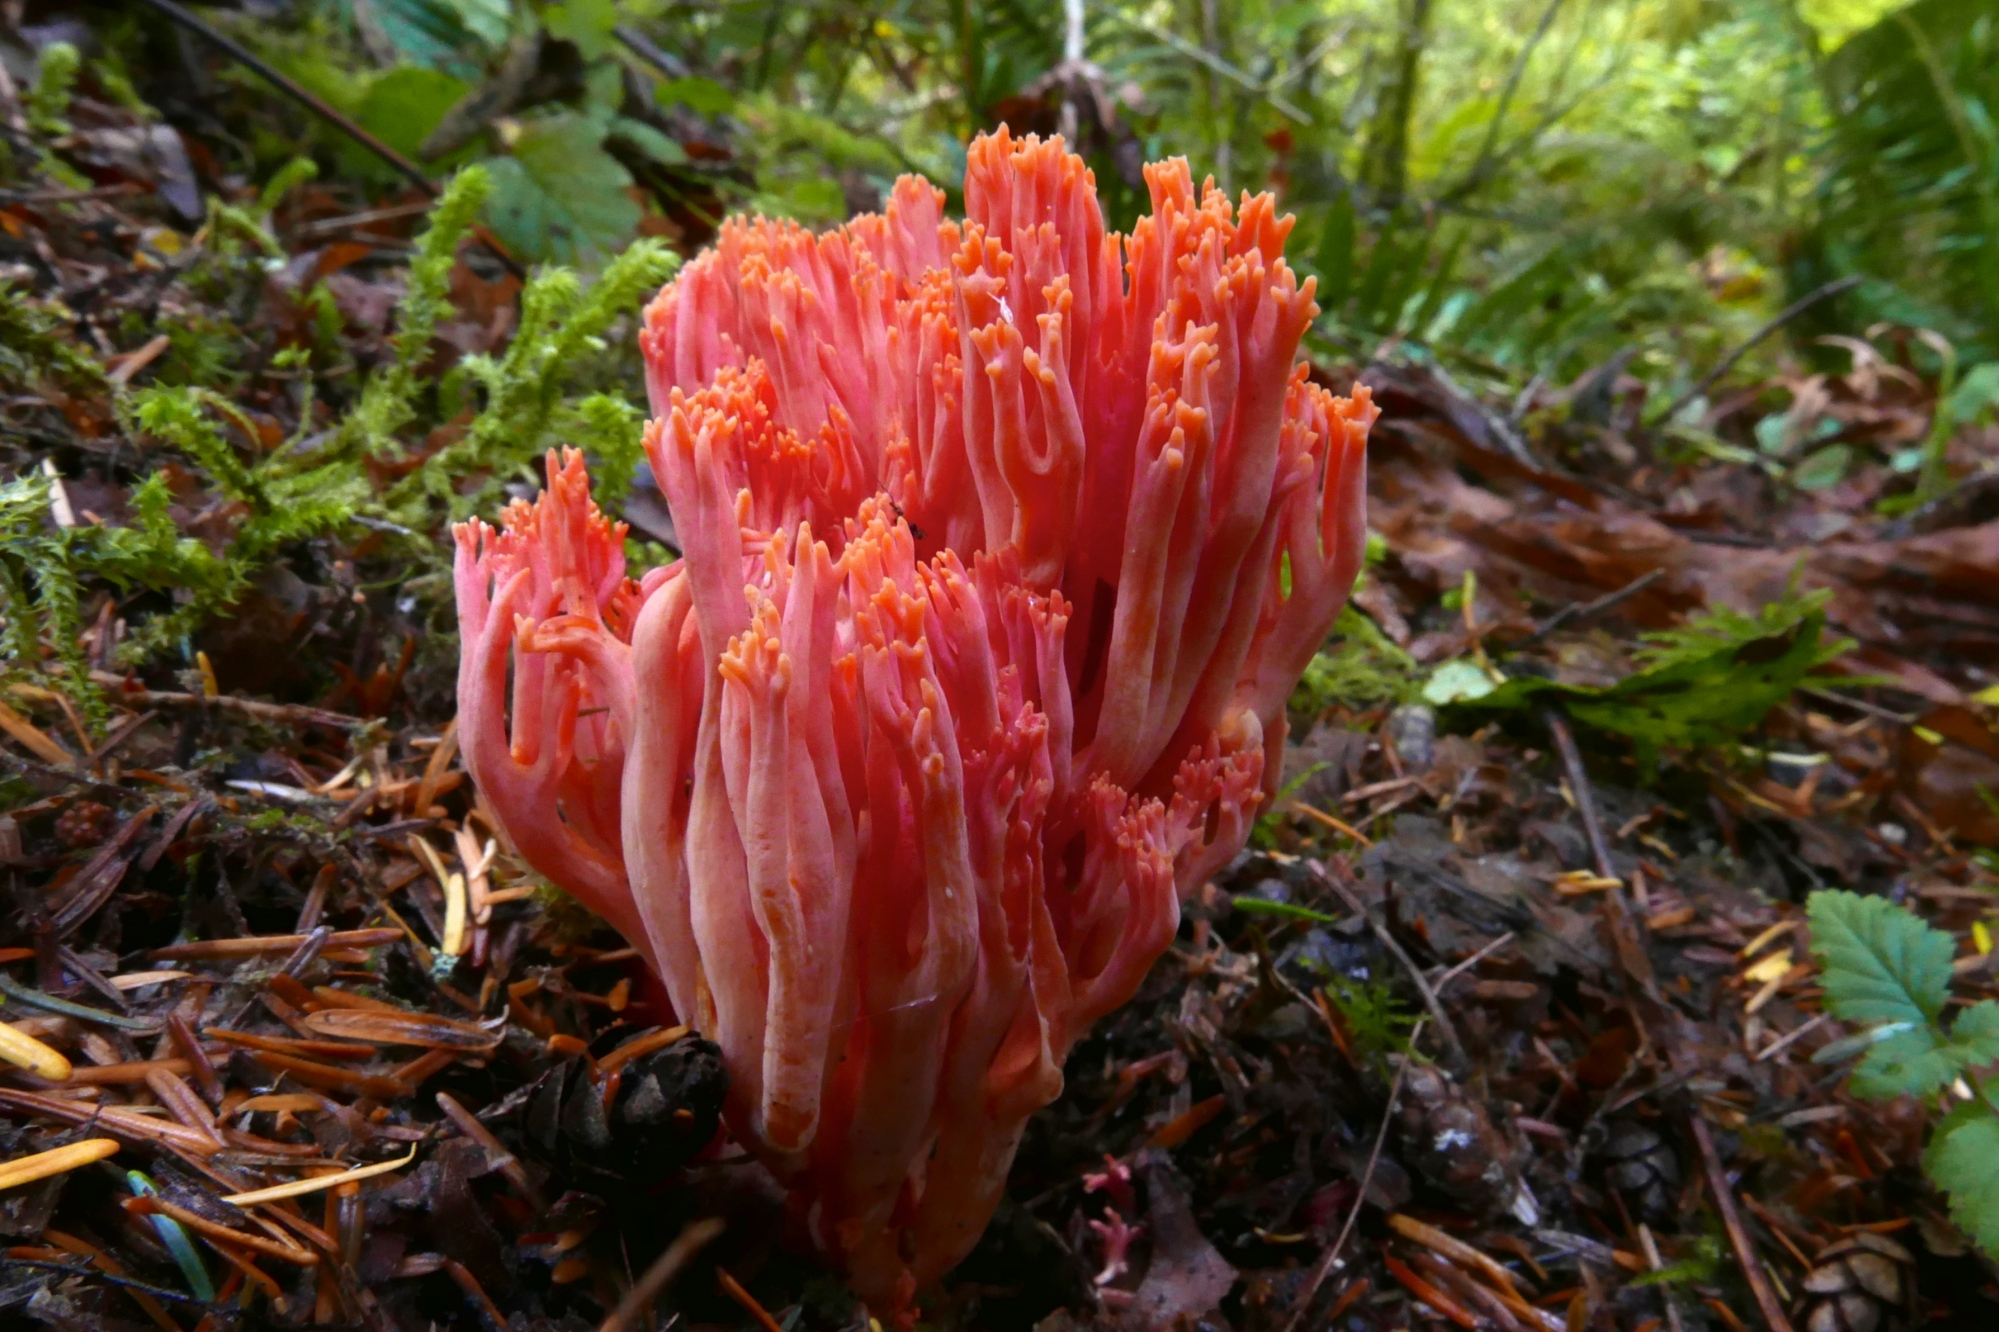 Limited Pictorial 1st Place Ramaria cyaneigranosa, by Steve Ness